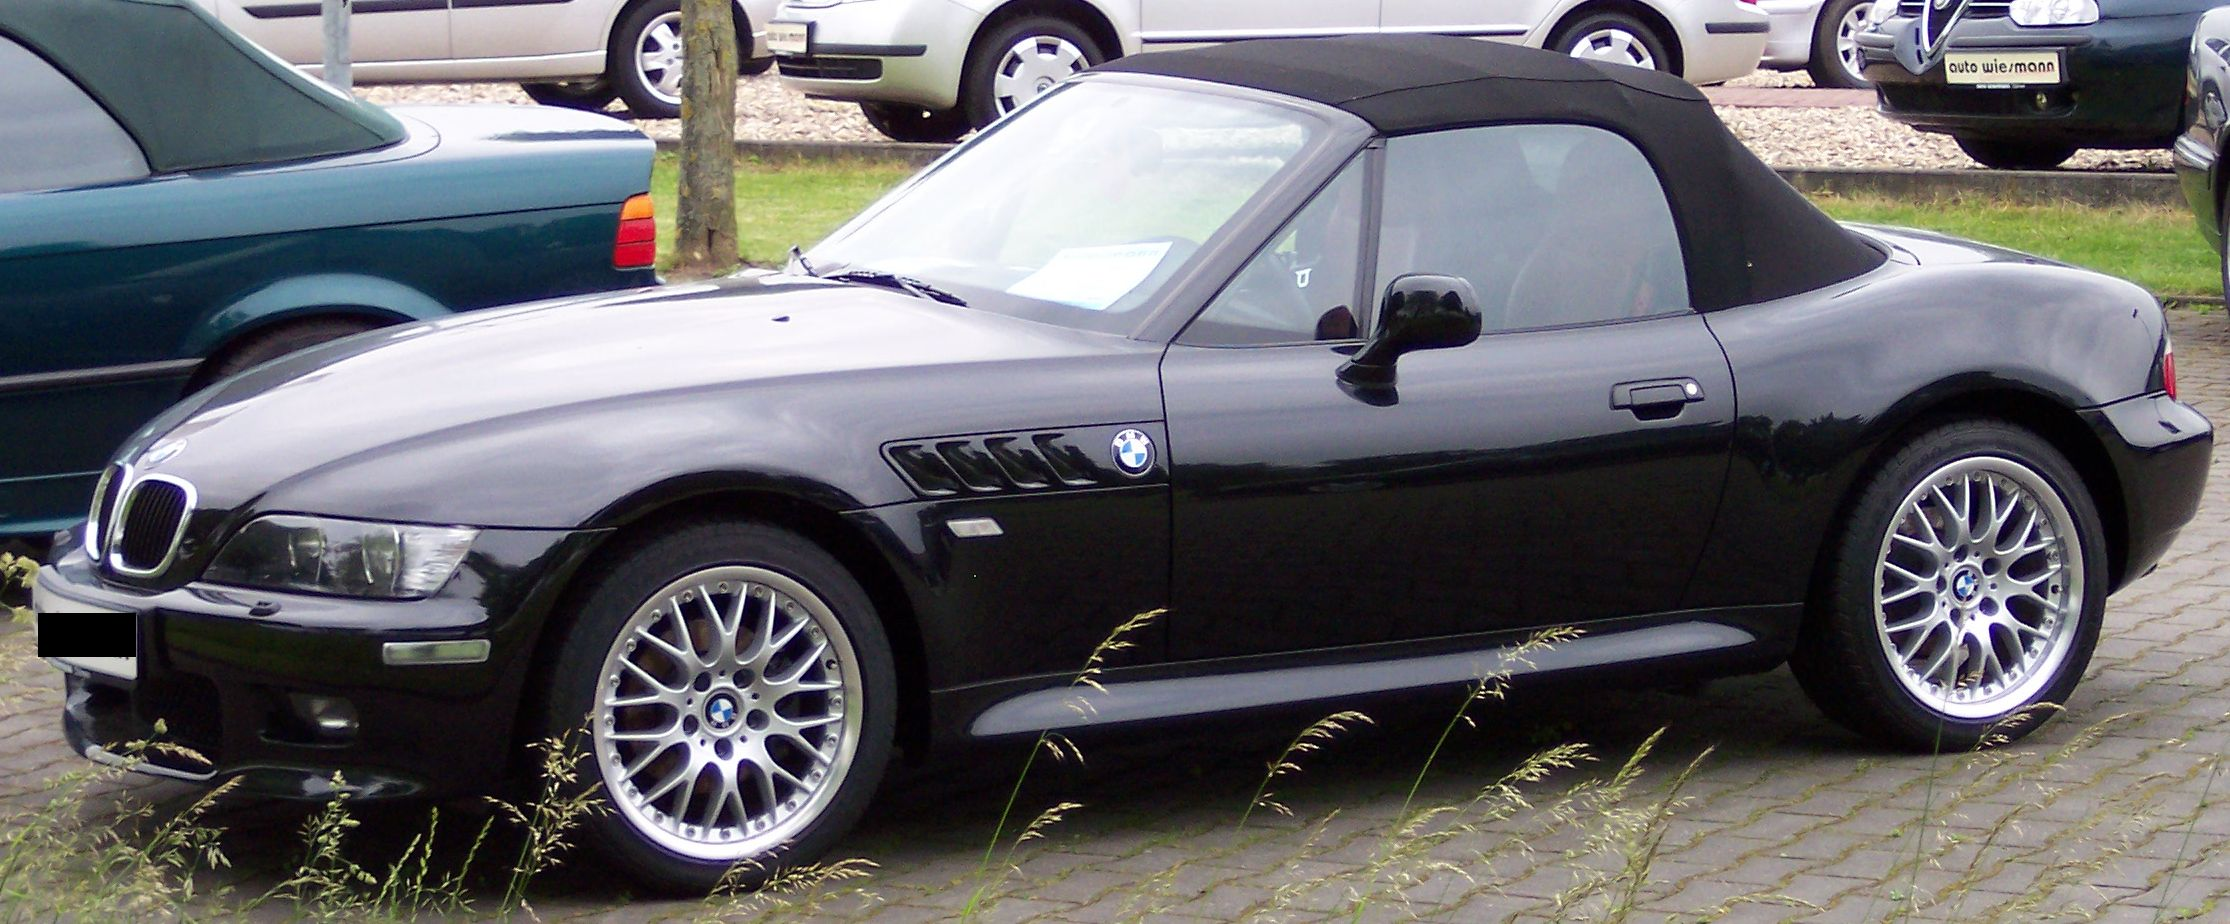 BMW Z3 history, photos on Better Parts LTD